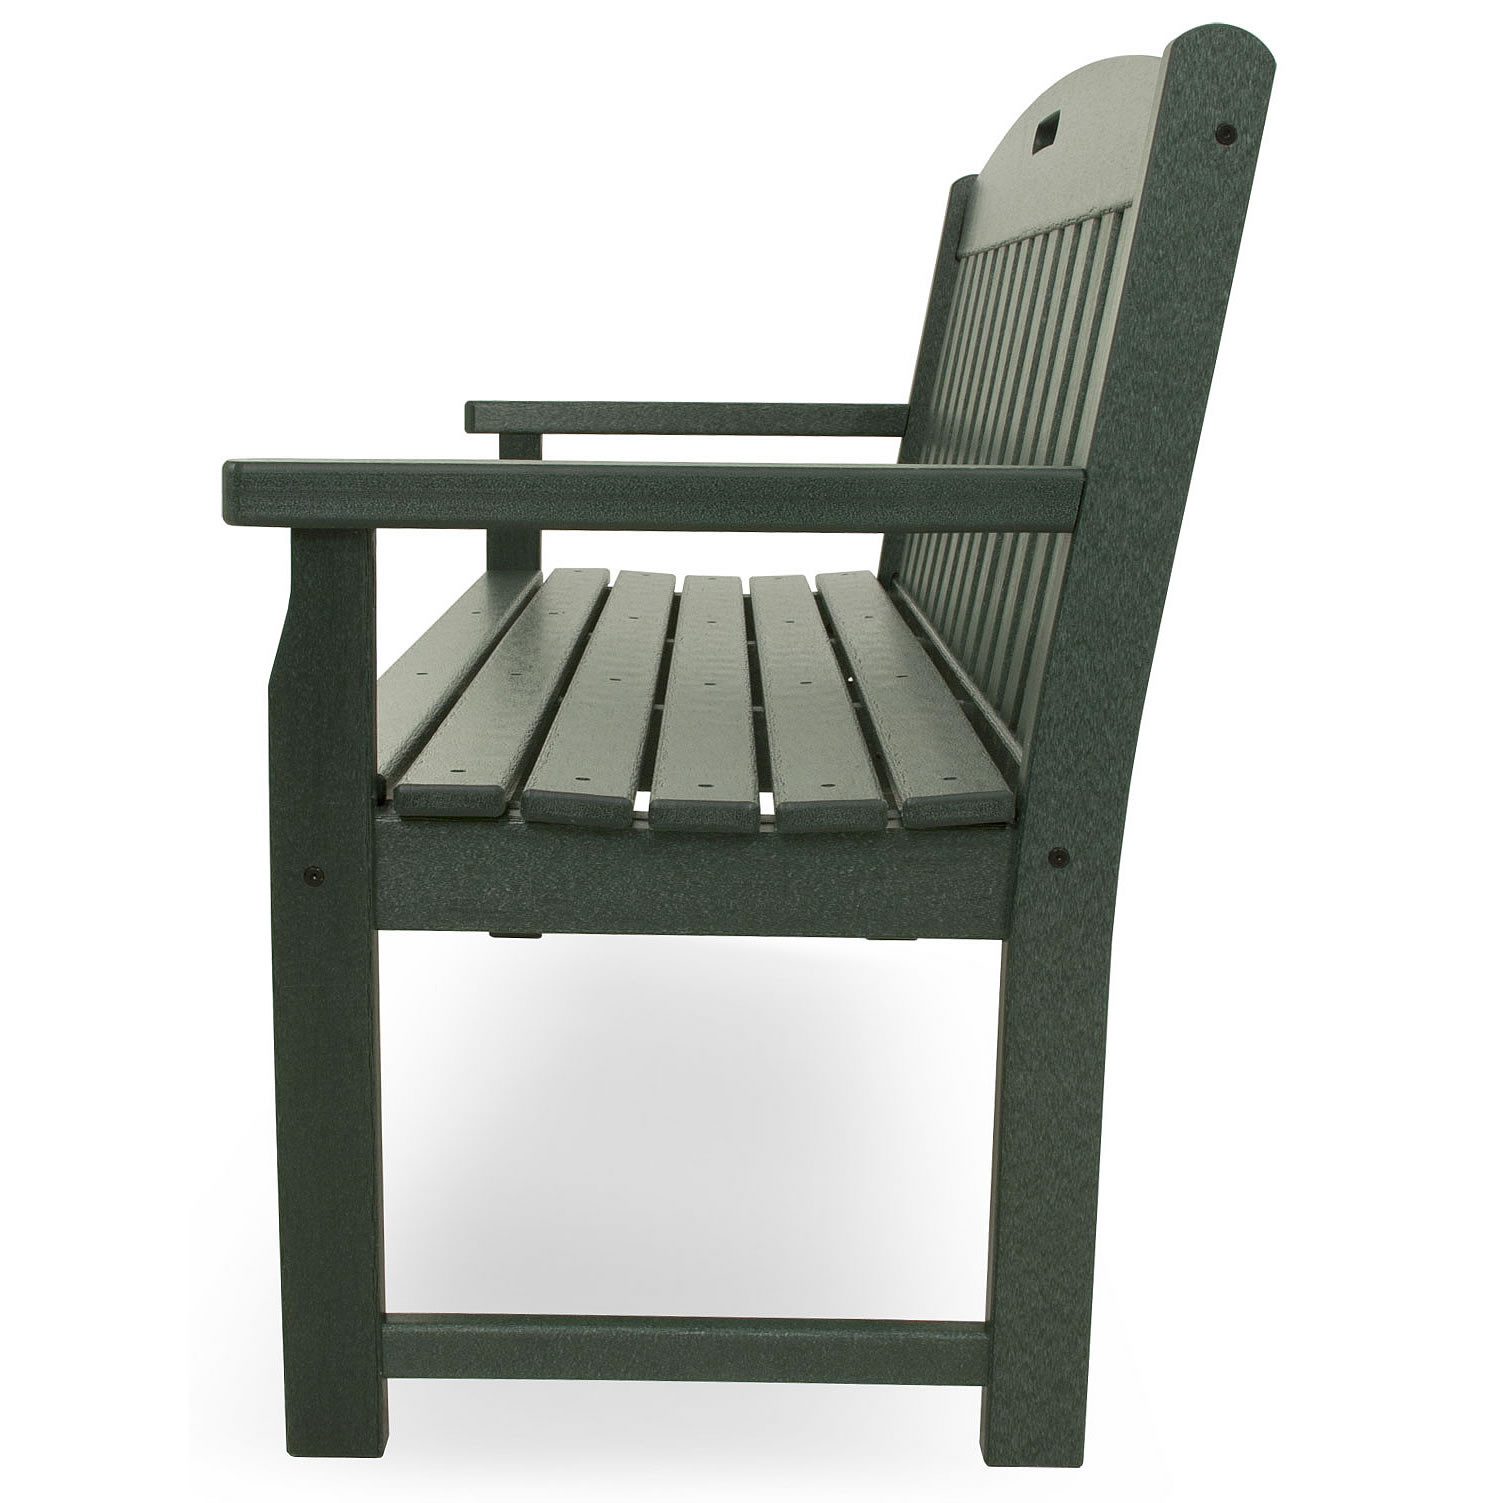 Trex Outdoor Furniture Yacht Club 60 In Bench Yacht Club Trex Outdoor Furniture Collections